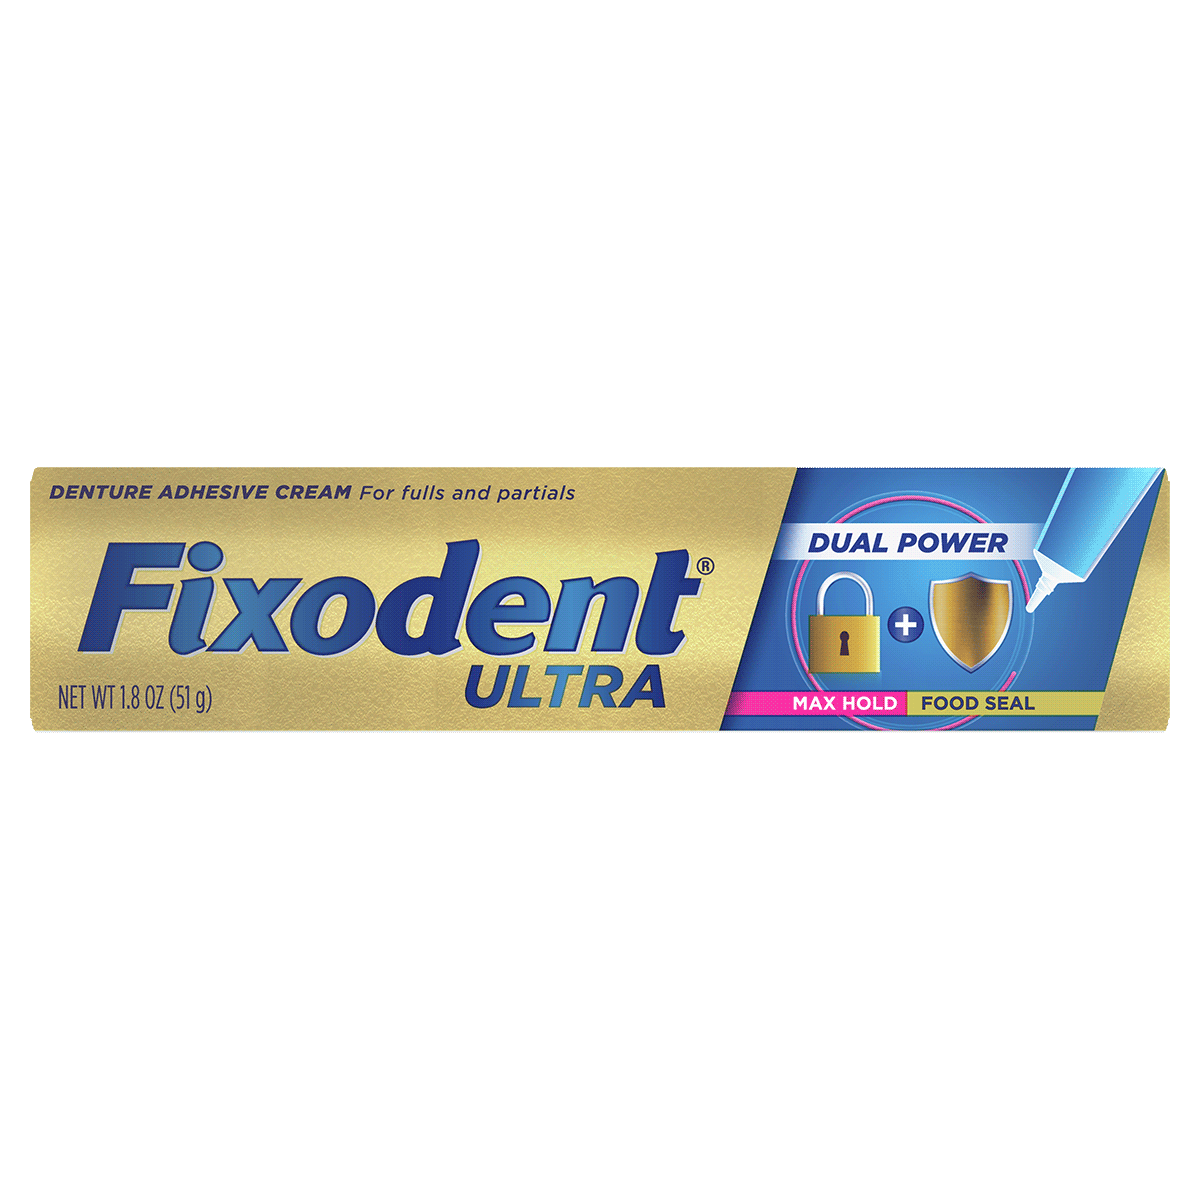 Fixodent Ultra Dual Power - Variant 1 Img